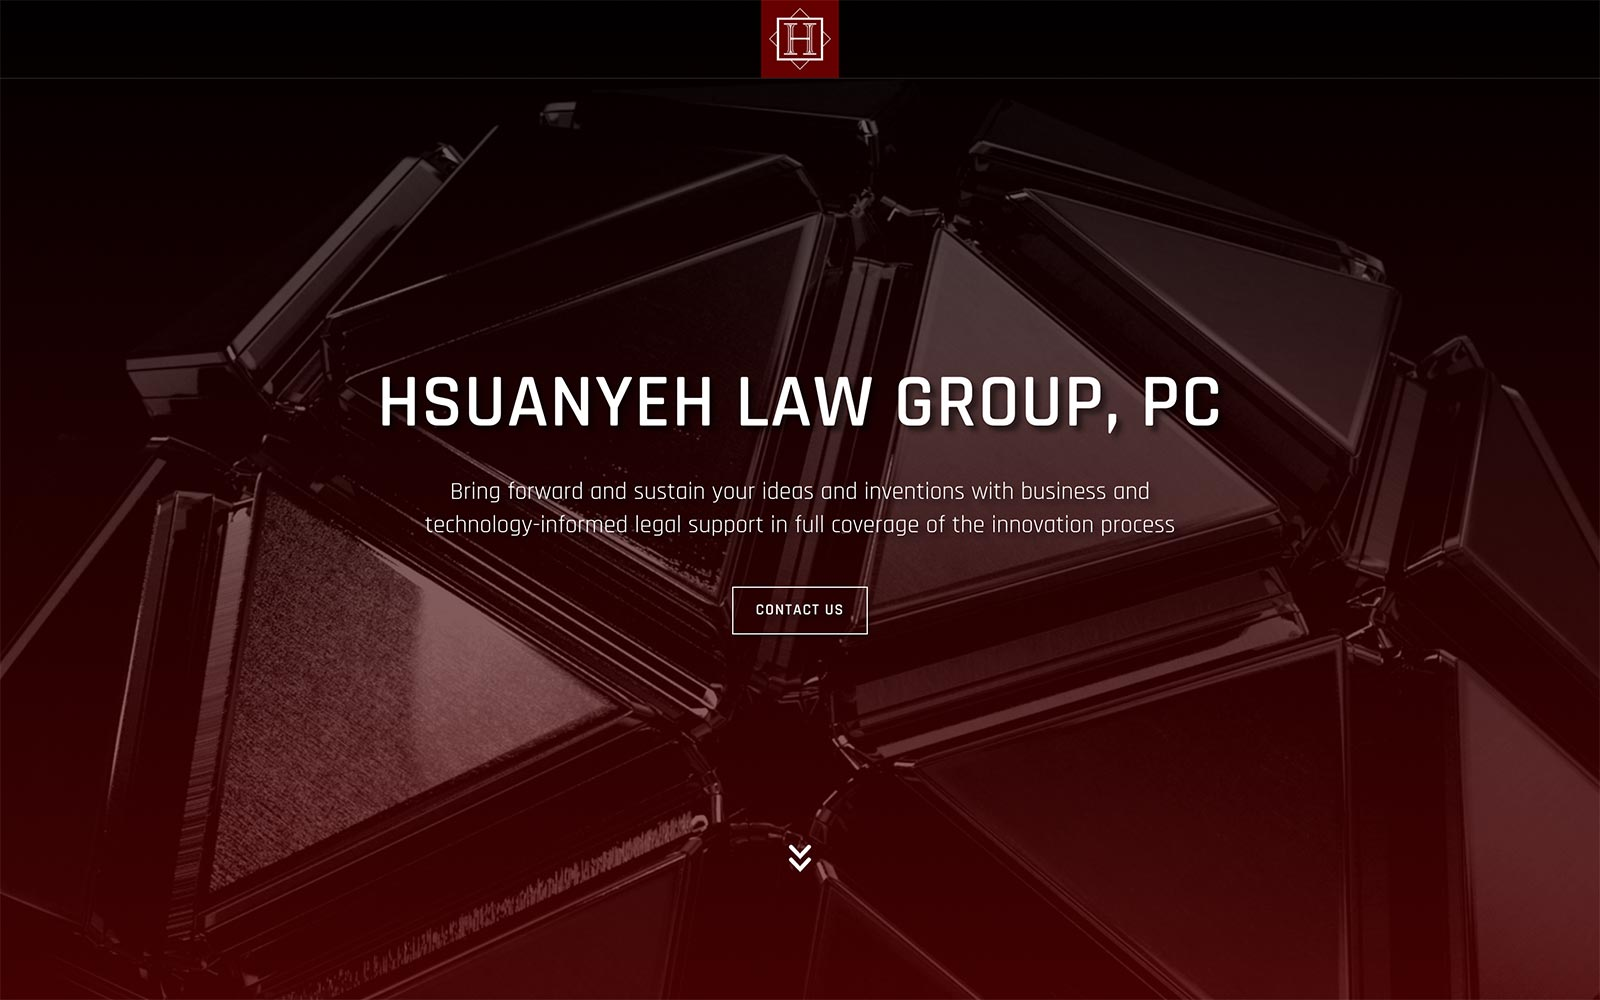 Hsuanyeh Law Group, PC